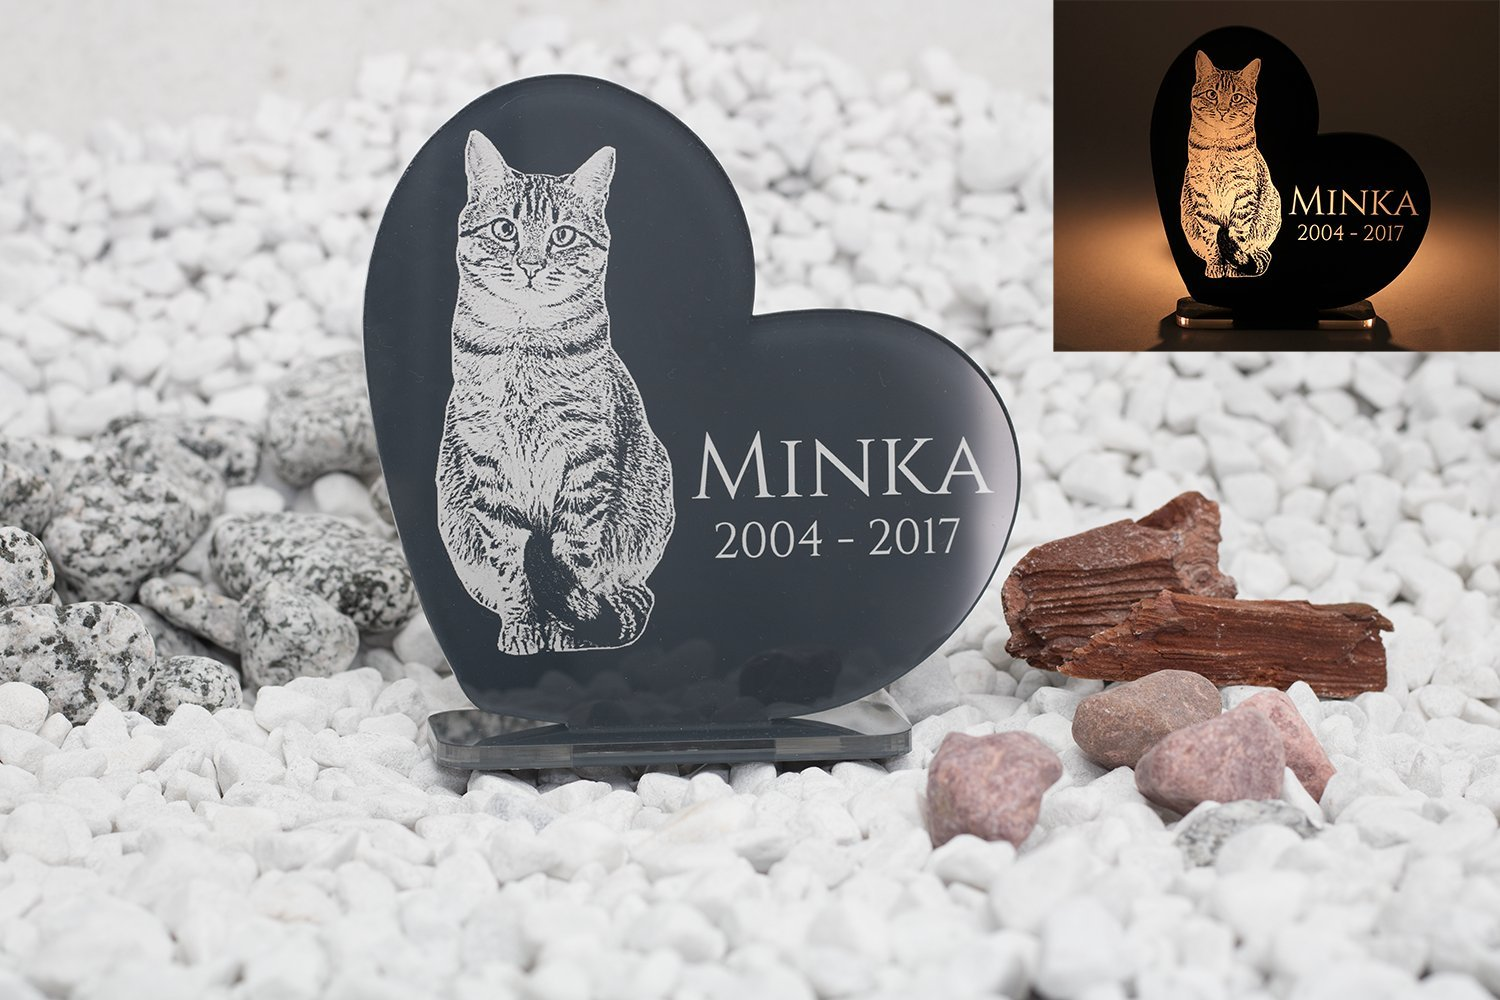 'Memorial Plaque/Graveside Memorial Personalised Engraved Freeze Frame/Photo Engraving High Shine Acrylic Assorted Colours Tombstone Plate DIY Ornament for Dogs, Cats and Horses CHRISCK design